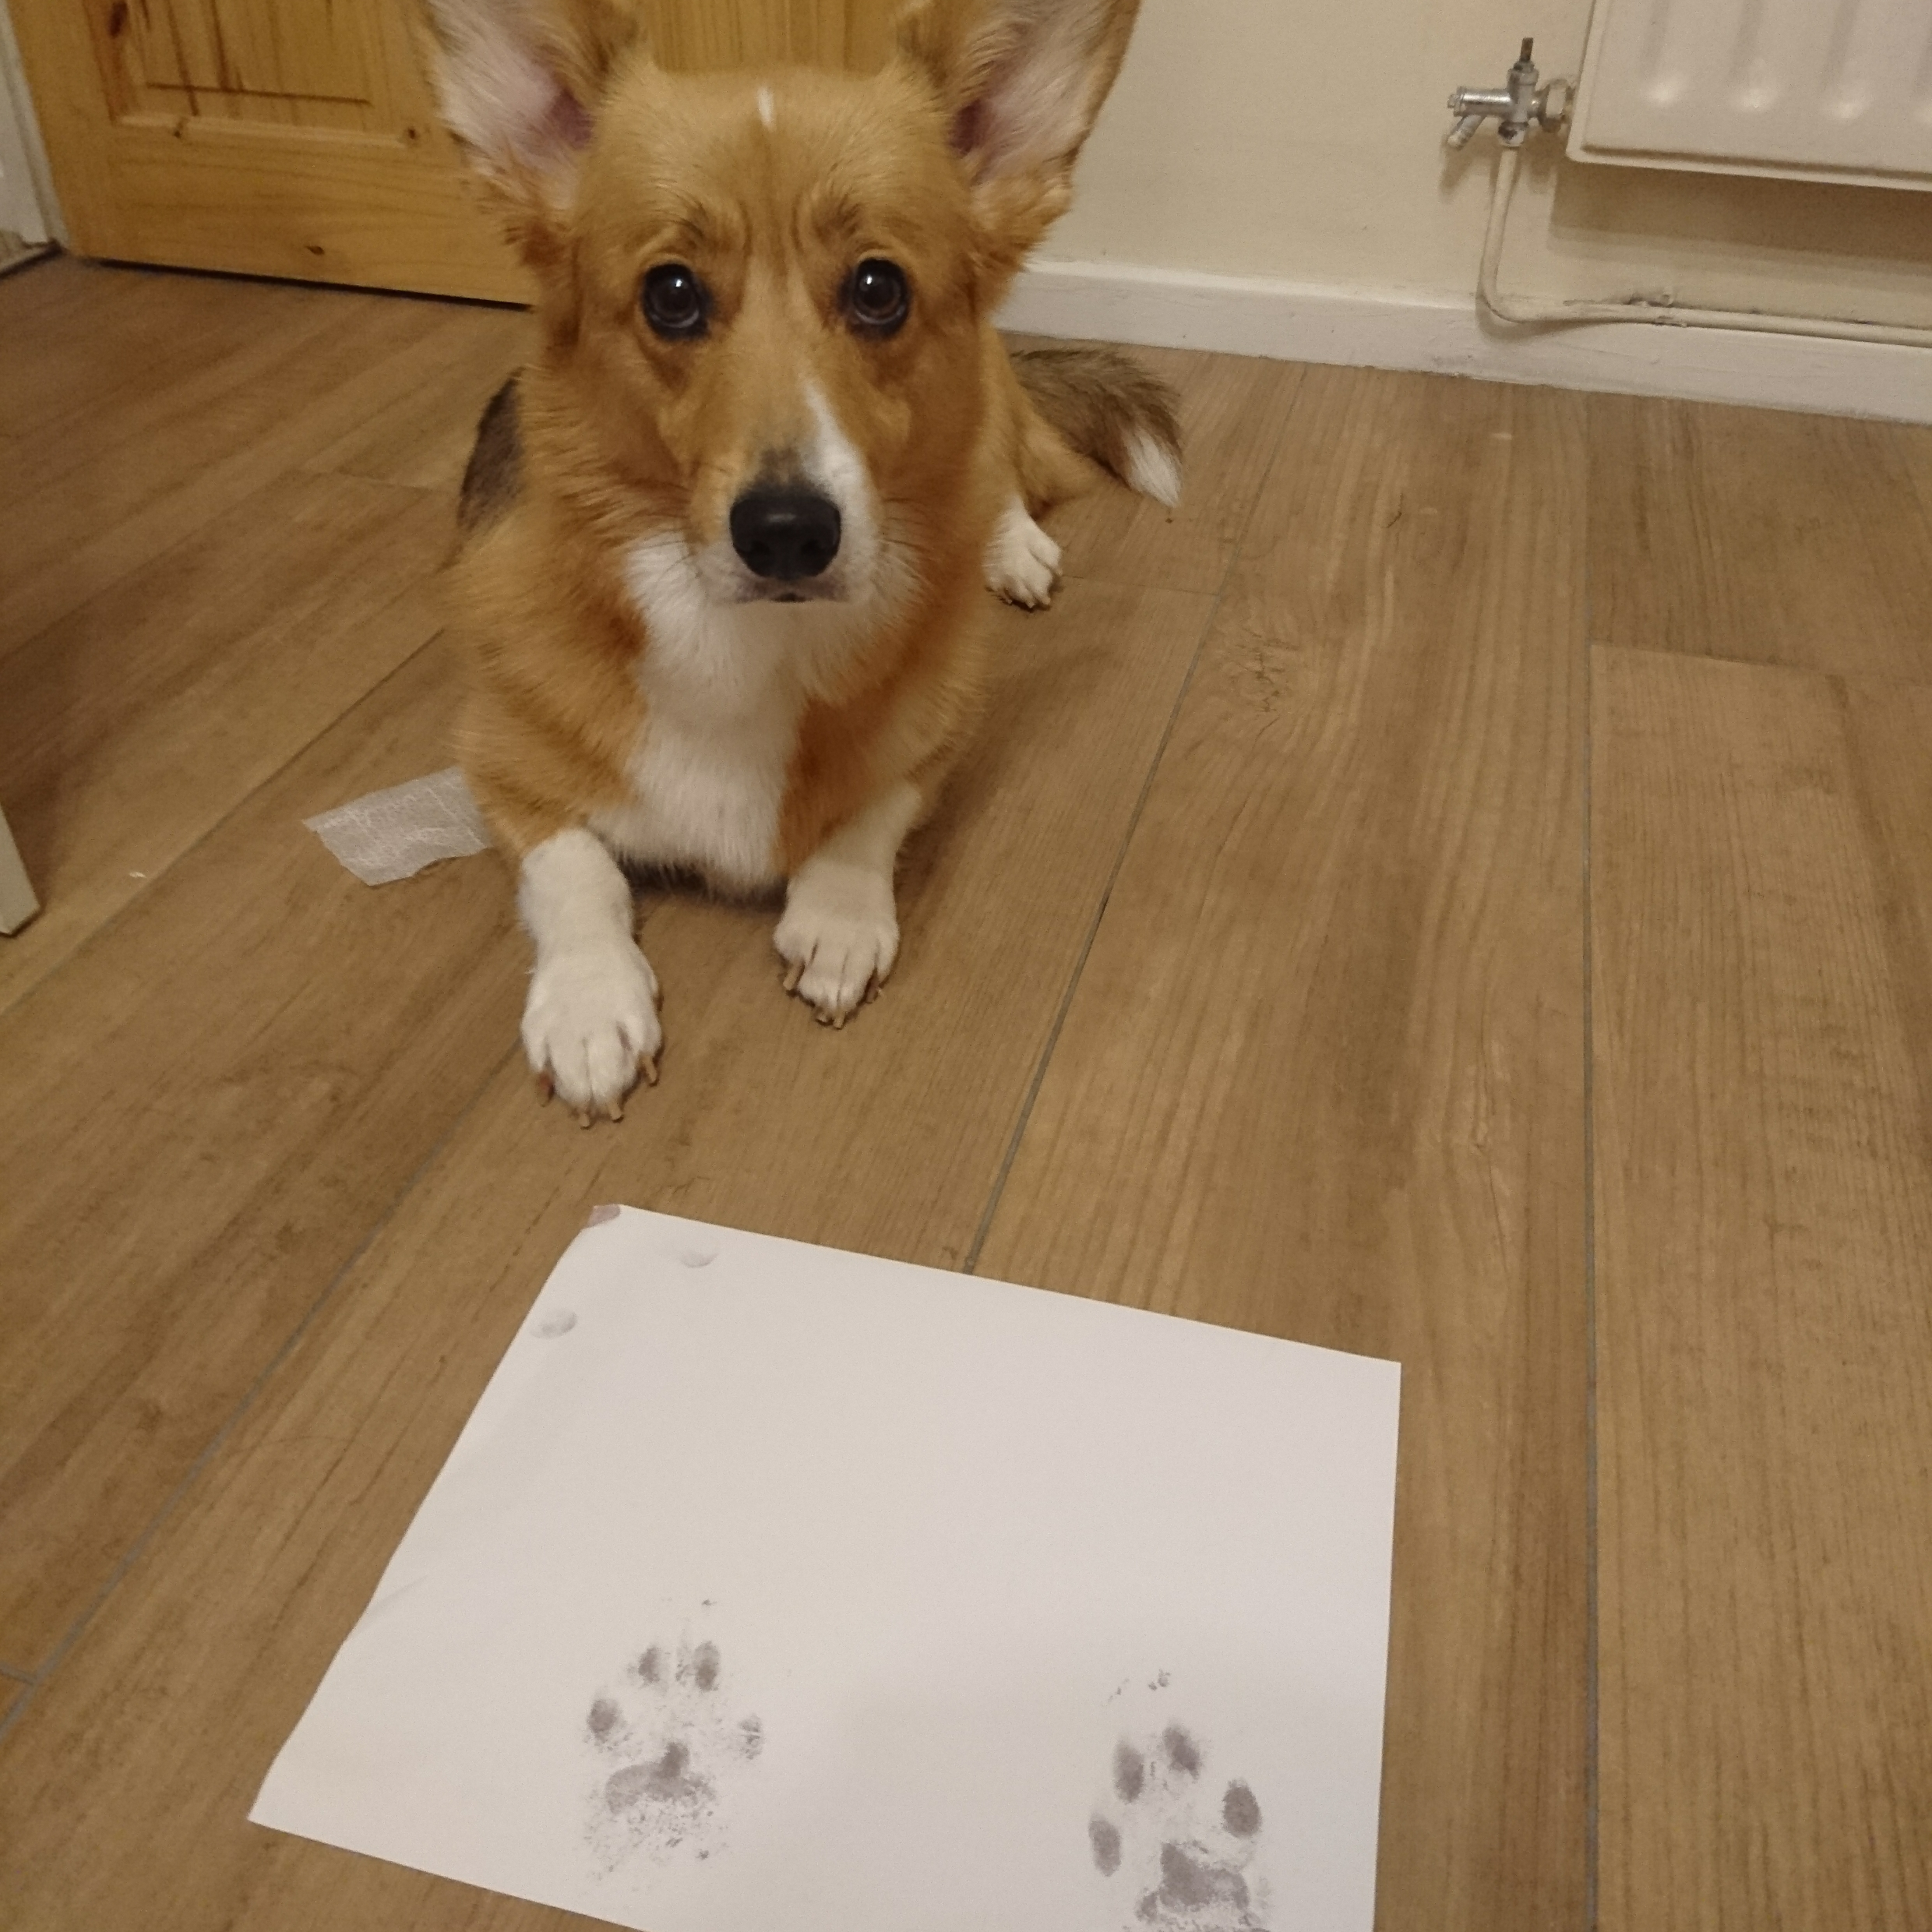 Wirral the Corgi sat with her inkless paw prints she just made with a kit from Cheeky Little Prints